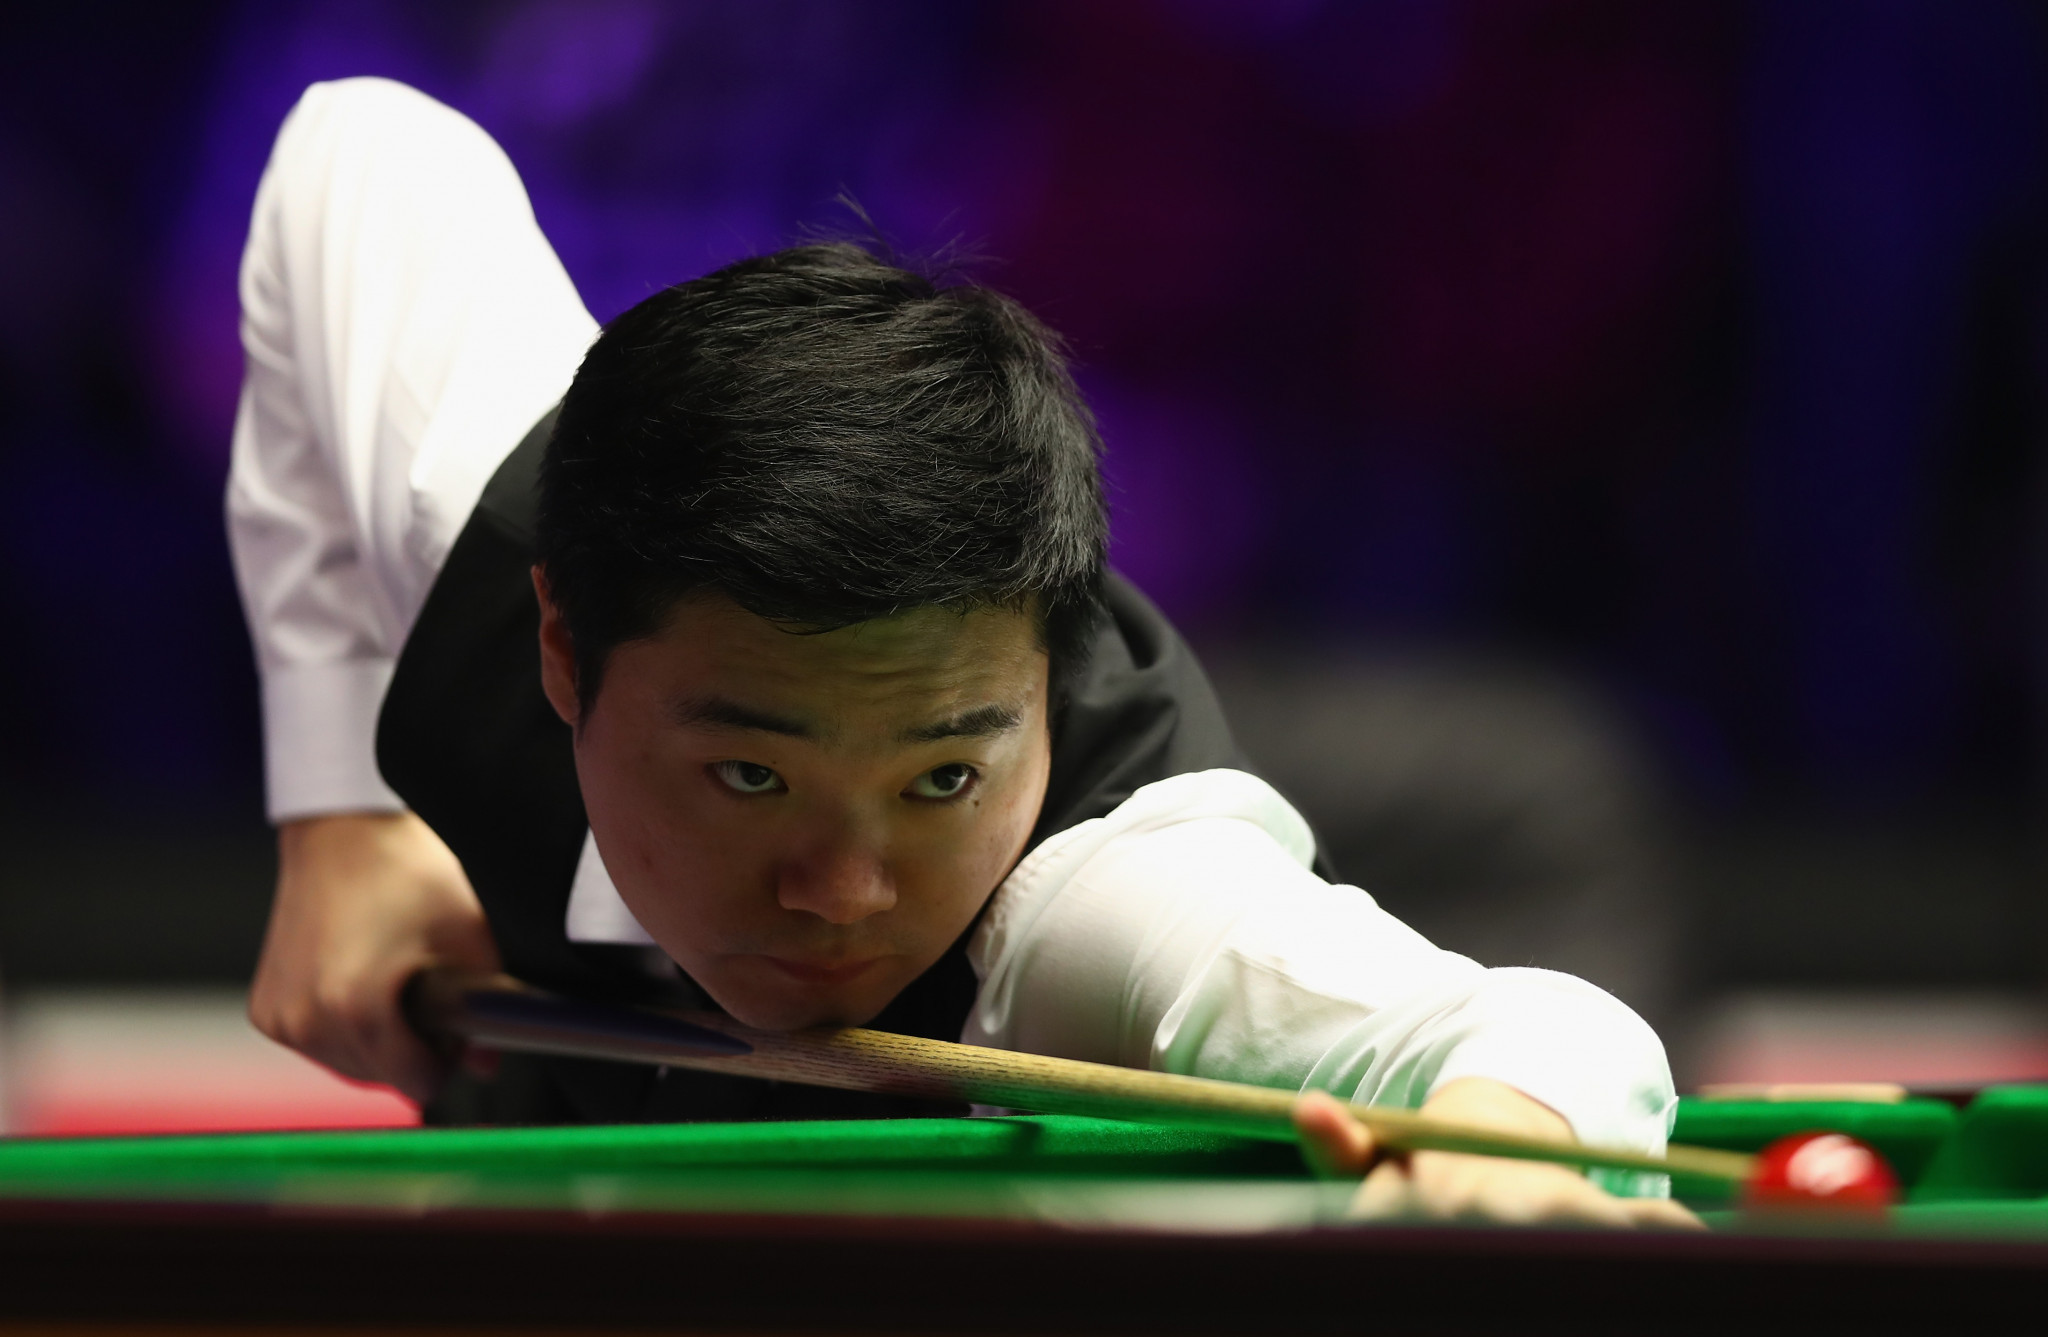 Ding Junhui is now the favourite for the title at the World Snooker Championship in Sheffield after reaching the quarter-final ©Getty Images